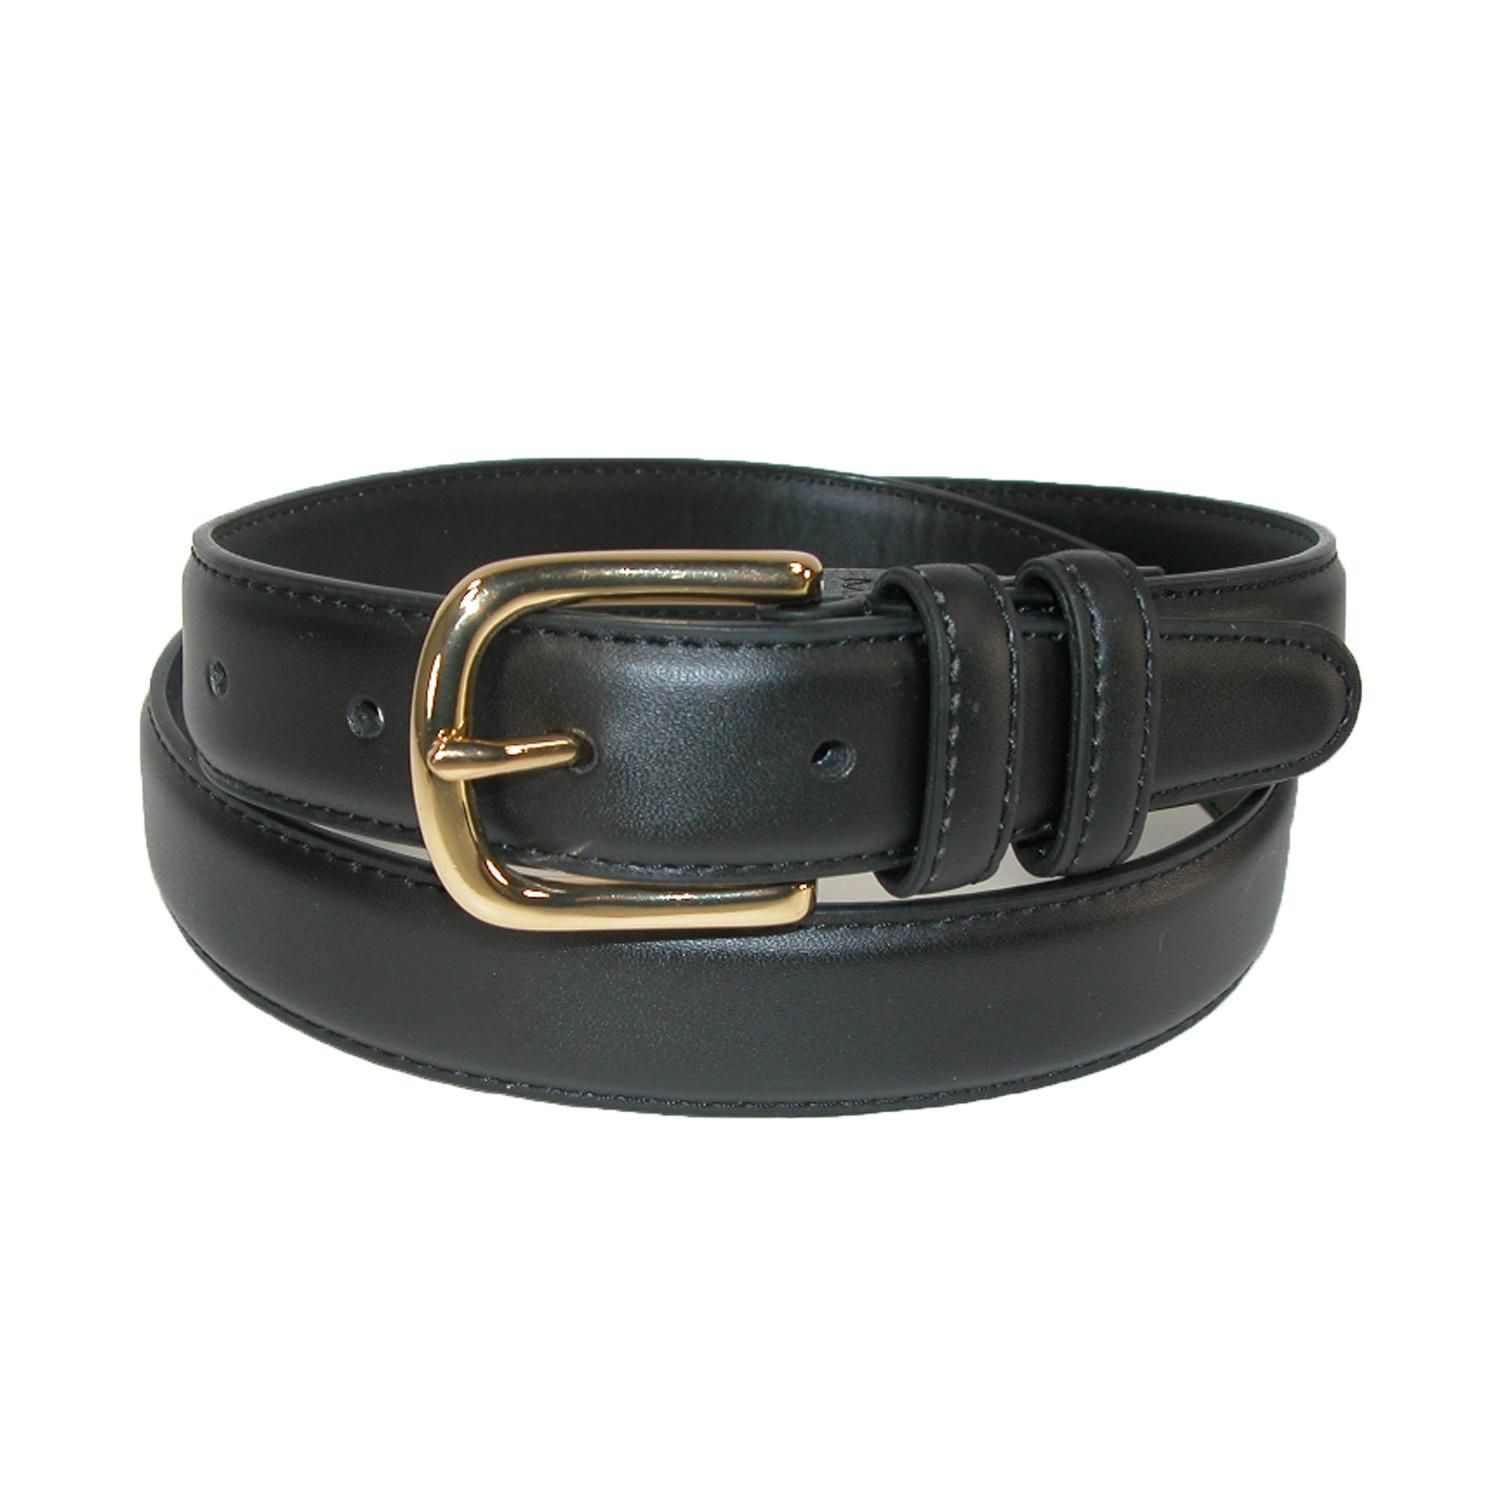 Aquarius Mens Leather Feather Edge Belt With Gold Buckle